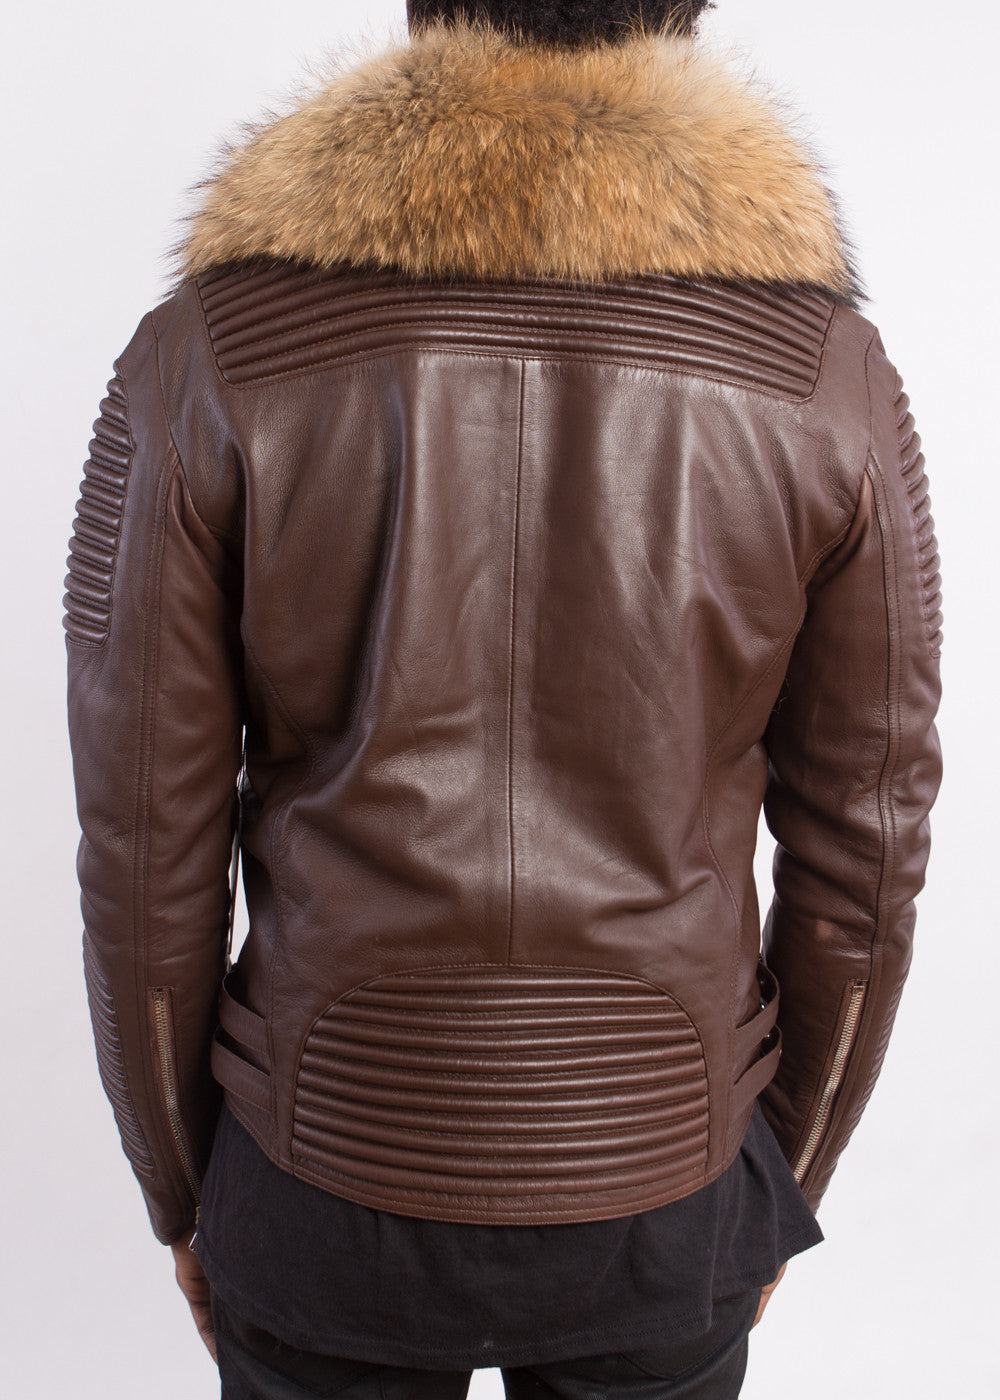 HUDSON 100 % LEATHER WITH FUR (REMOVABLE) - cosign1975